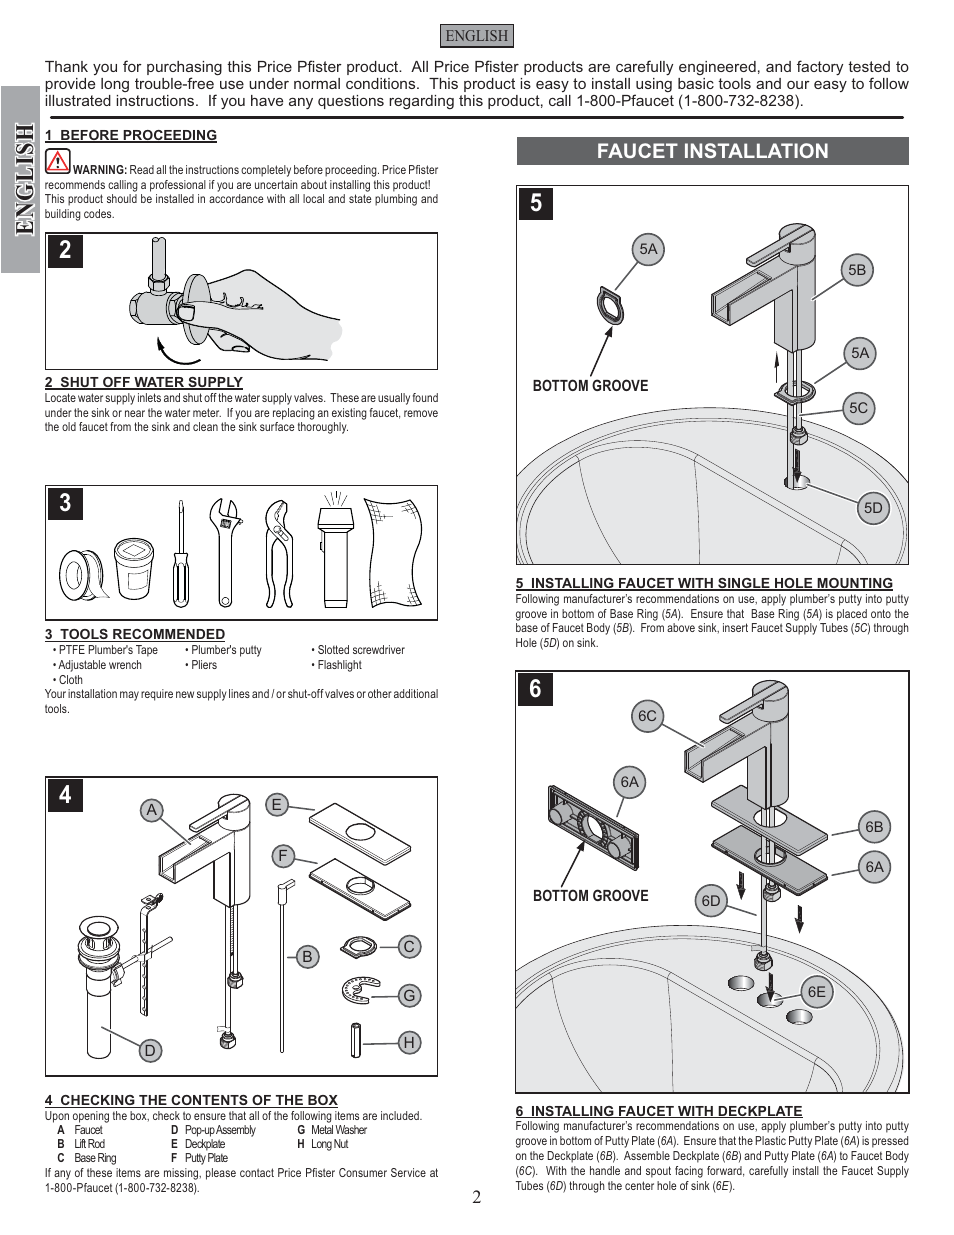 English Faucet Installation Pfister F 042 Vgkk User Manual Page